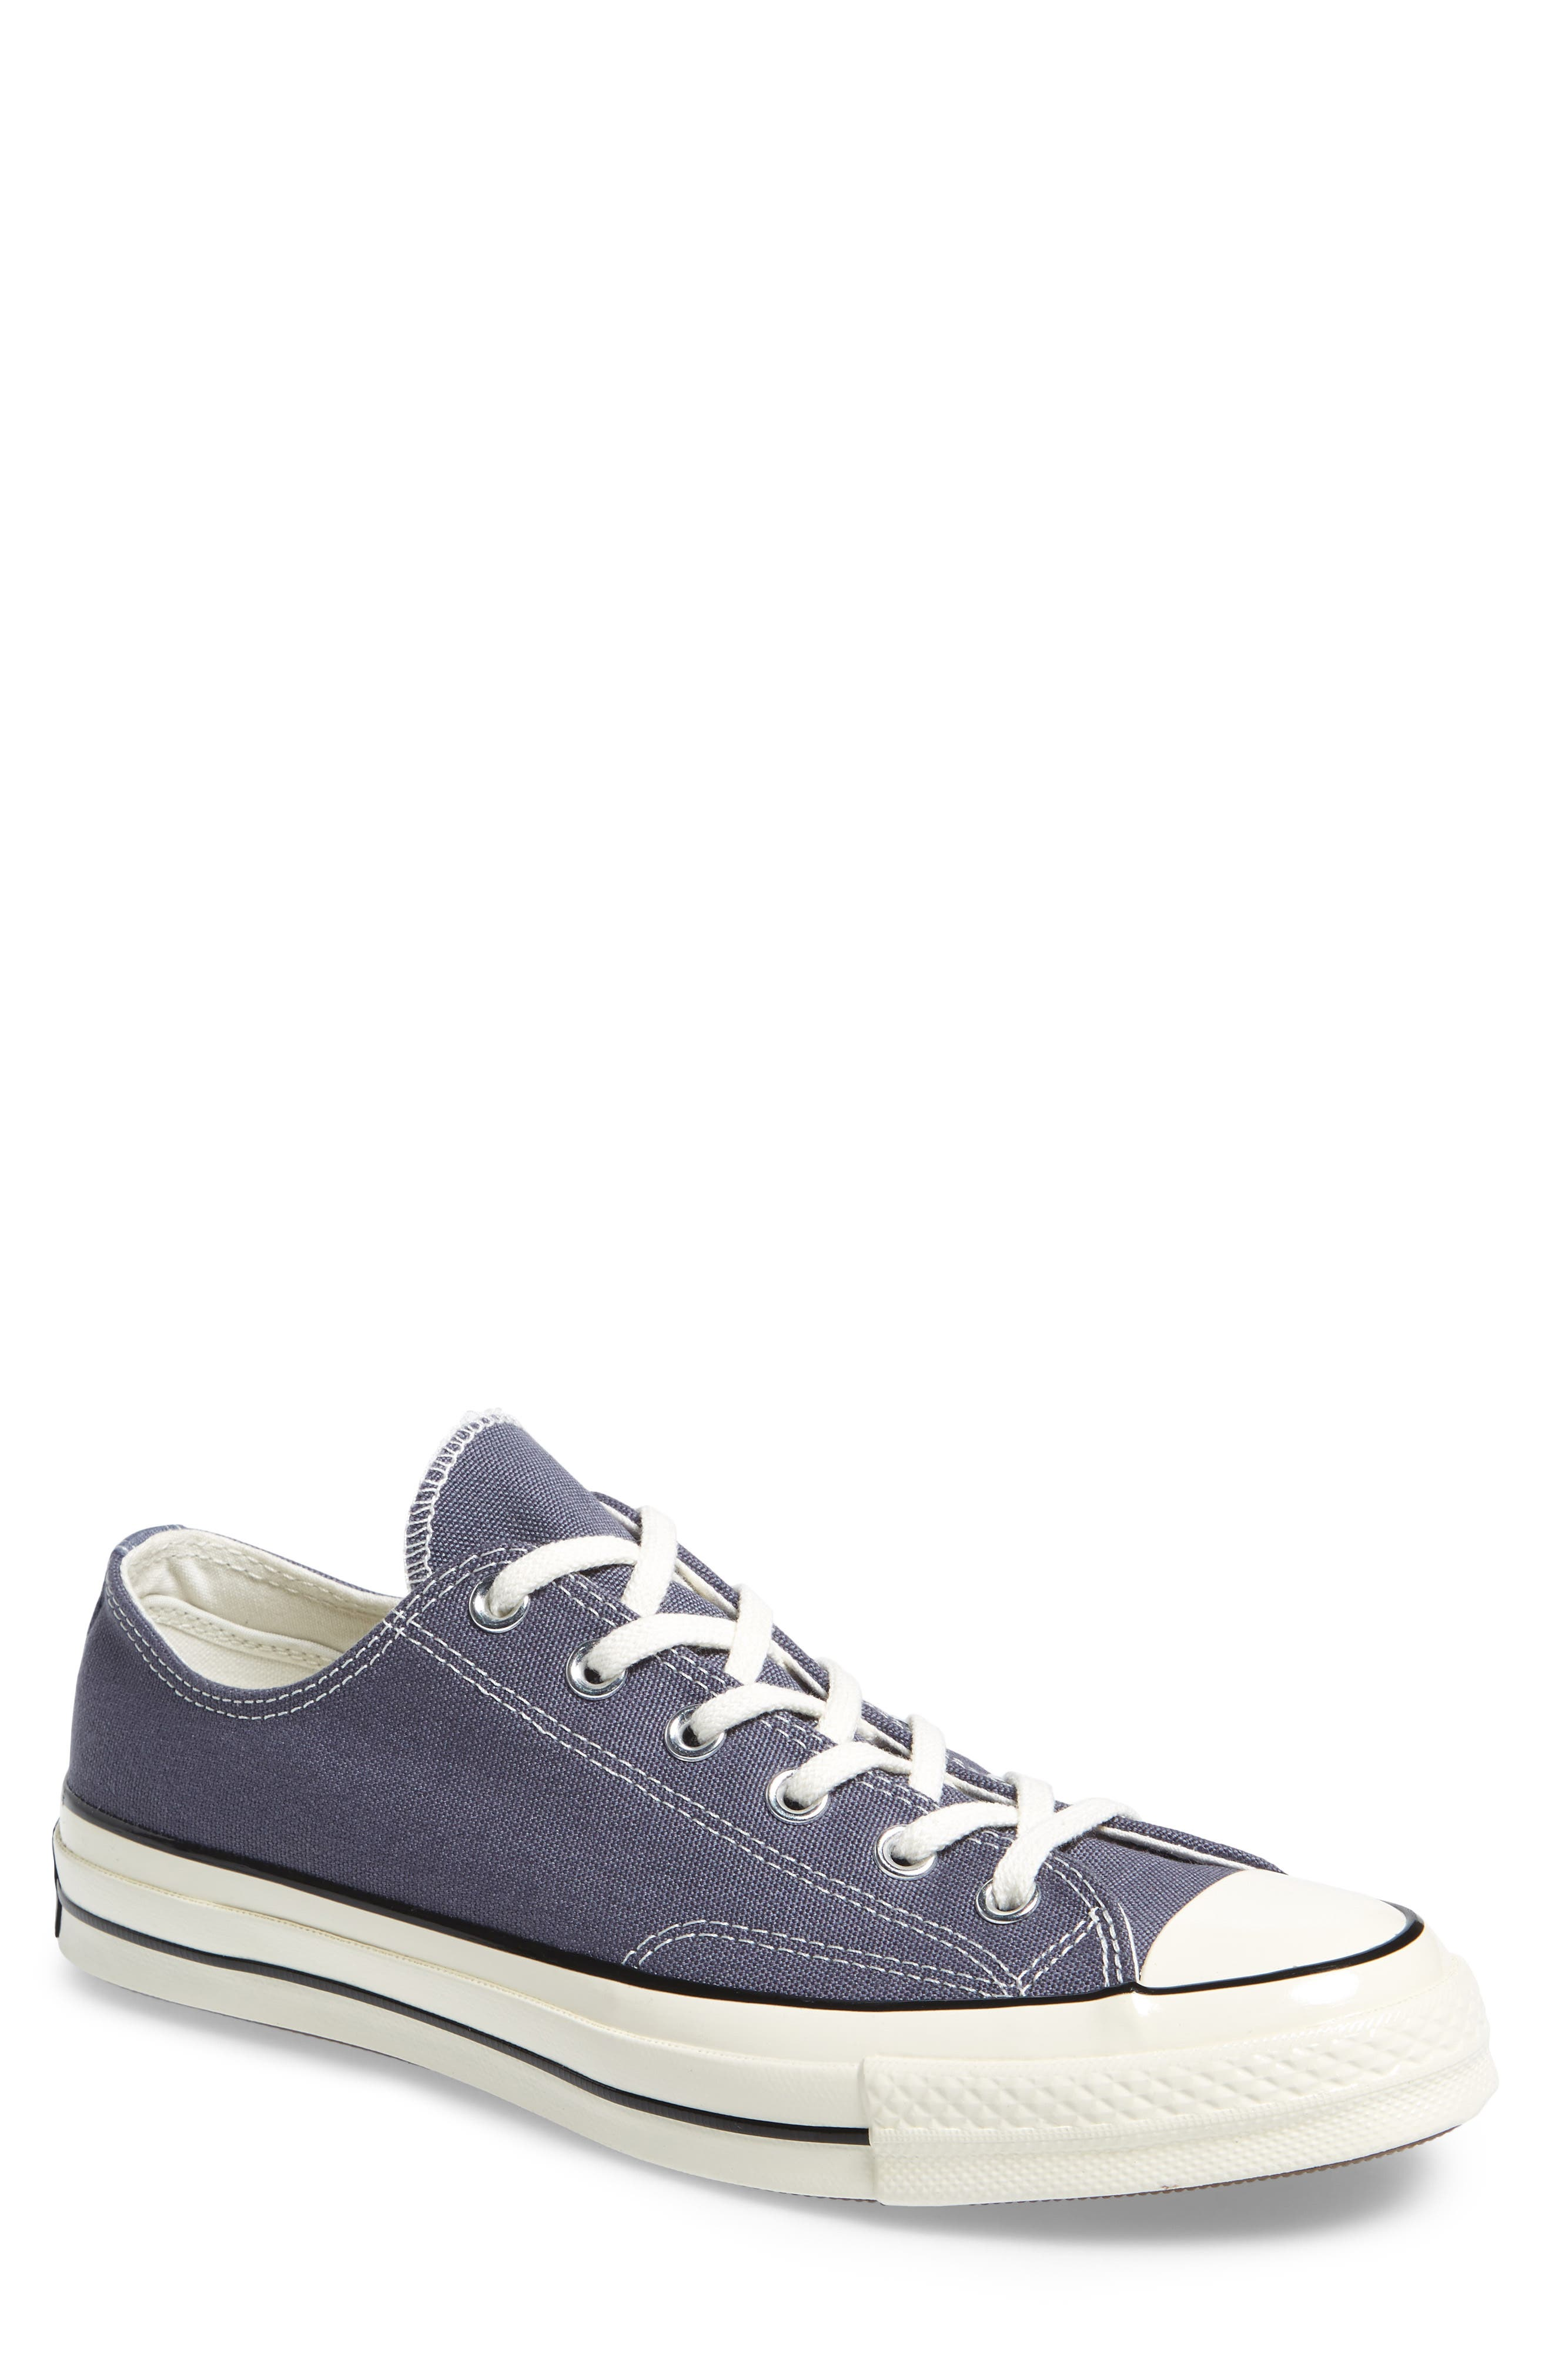 Chuck Taylor<sup>®</sup> All Star<sup>®</sup> 70 Heritage Sneaker,                             Main thumbnail 1, color,                             Light Carbon Canvas